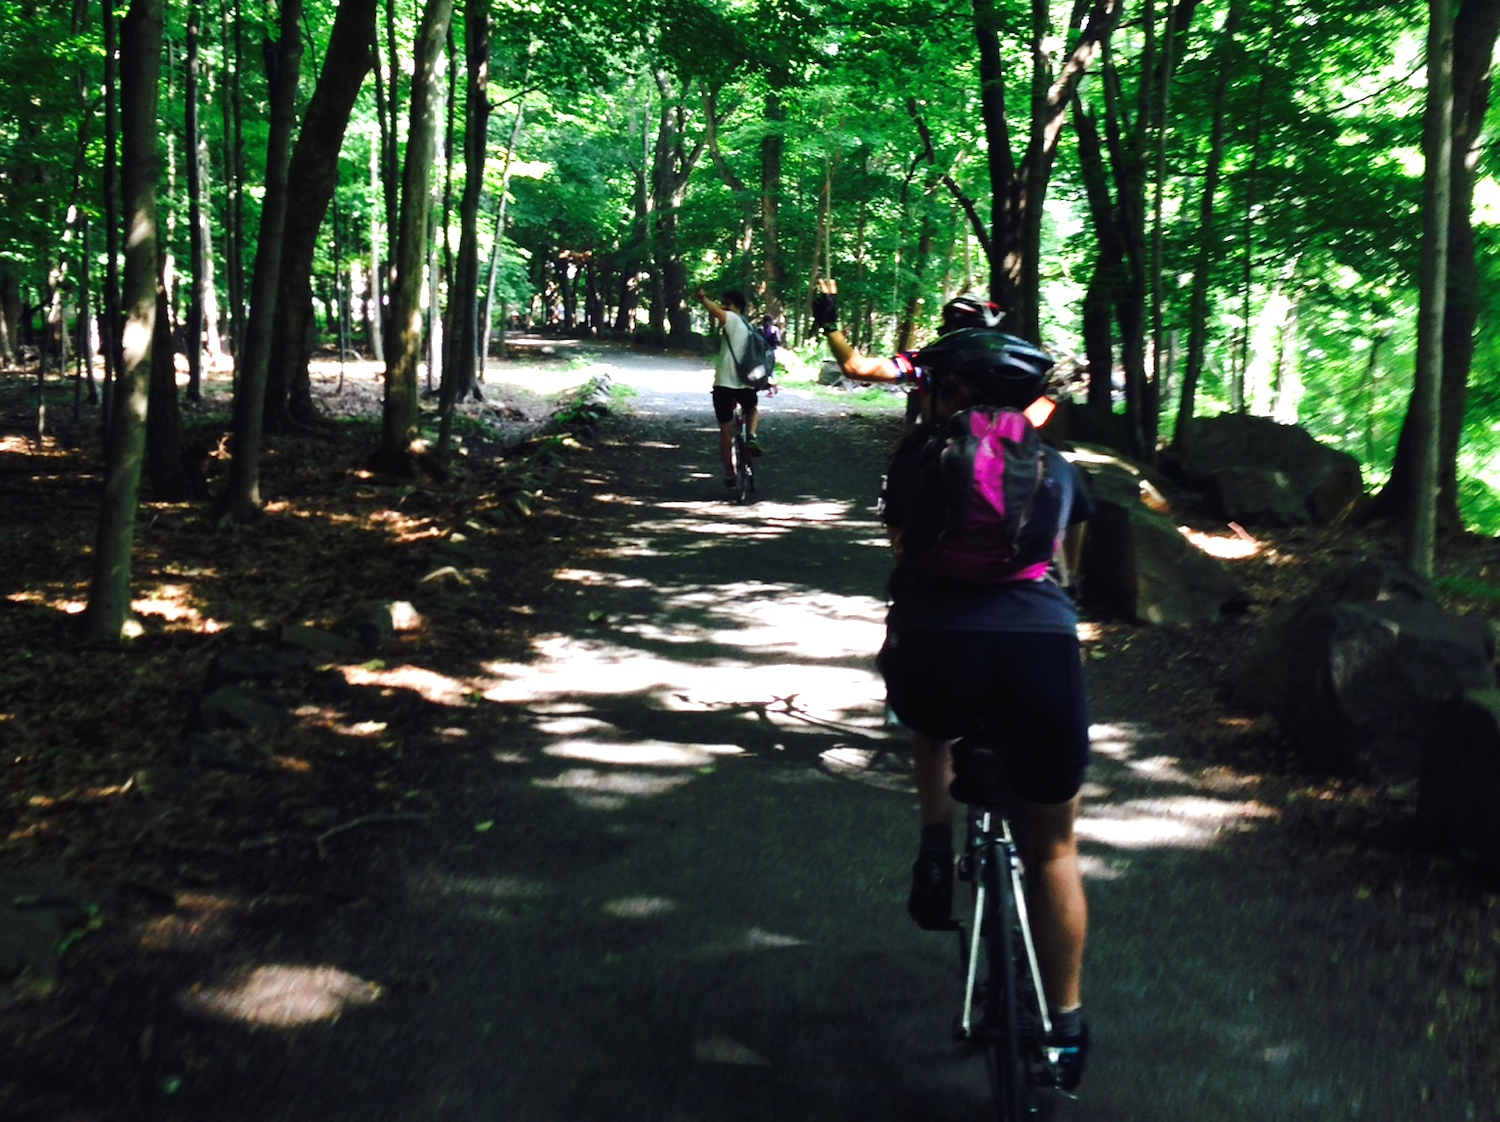 Enjoy a morning escape, fresh air, trees and of course biking!